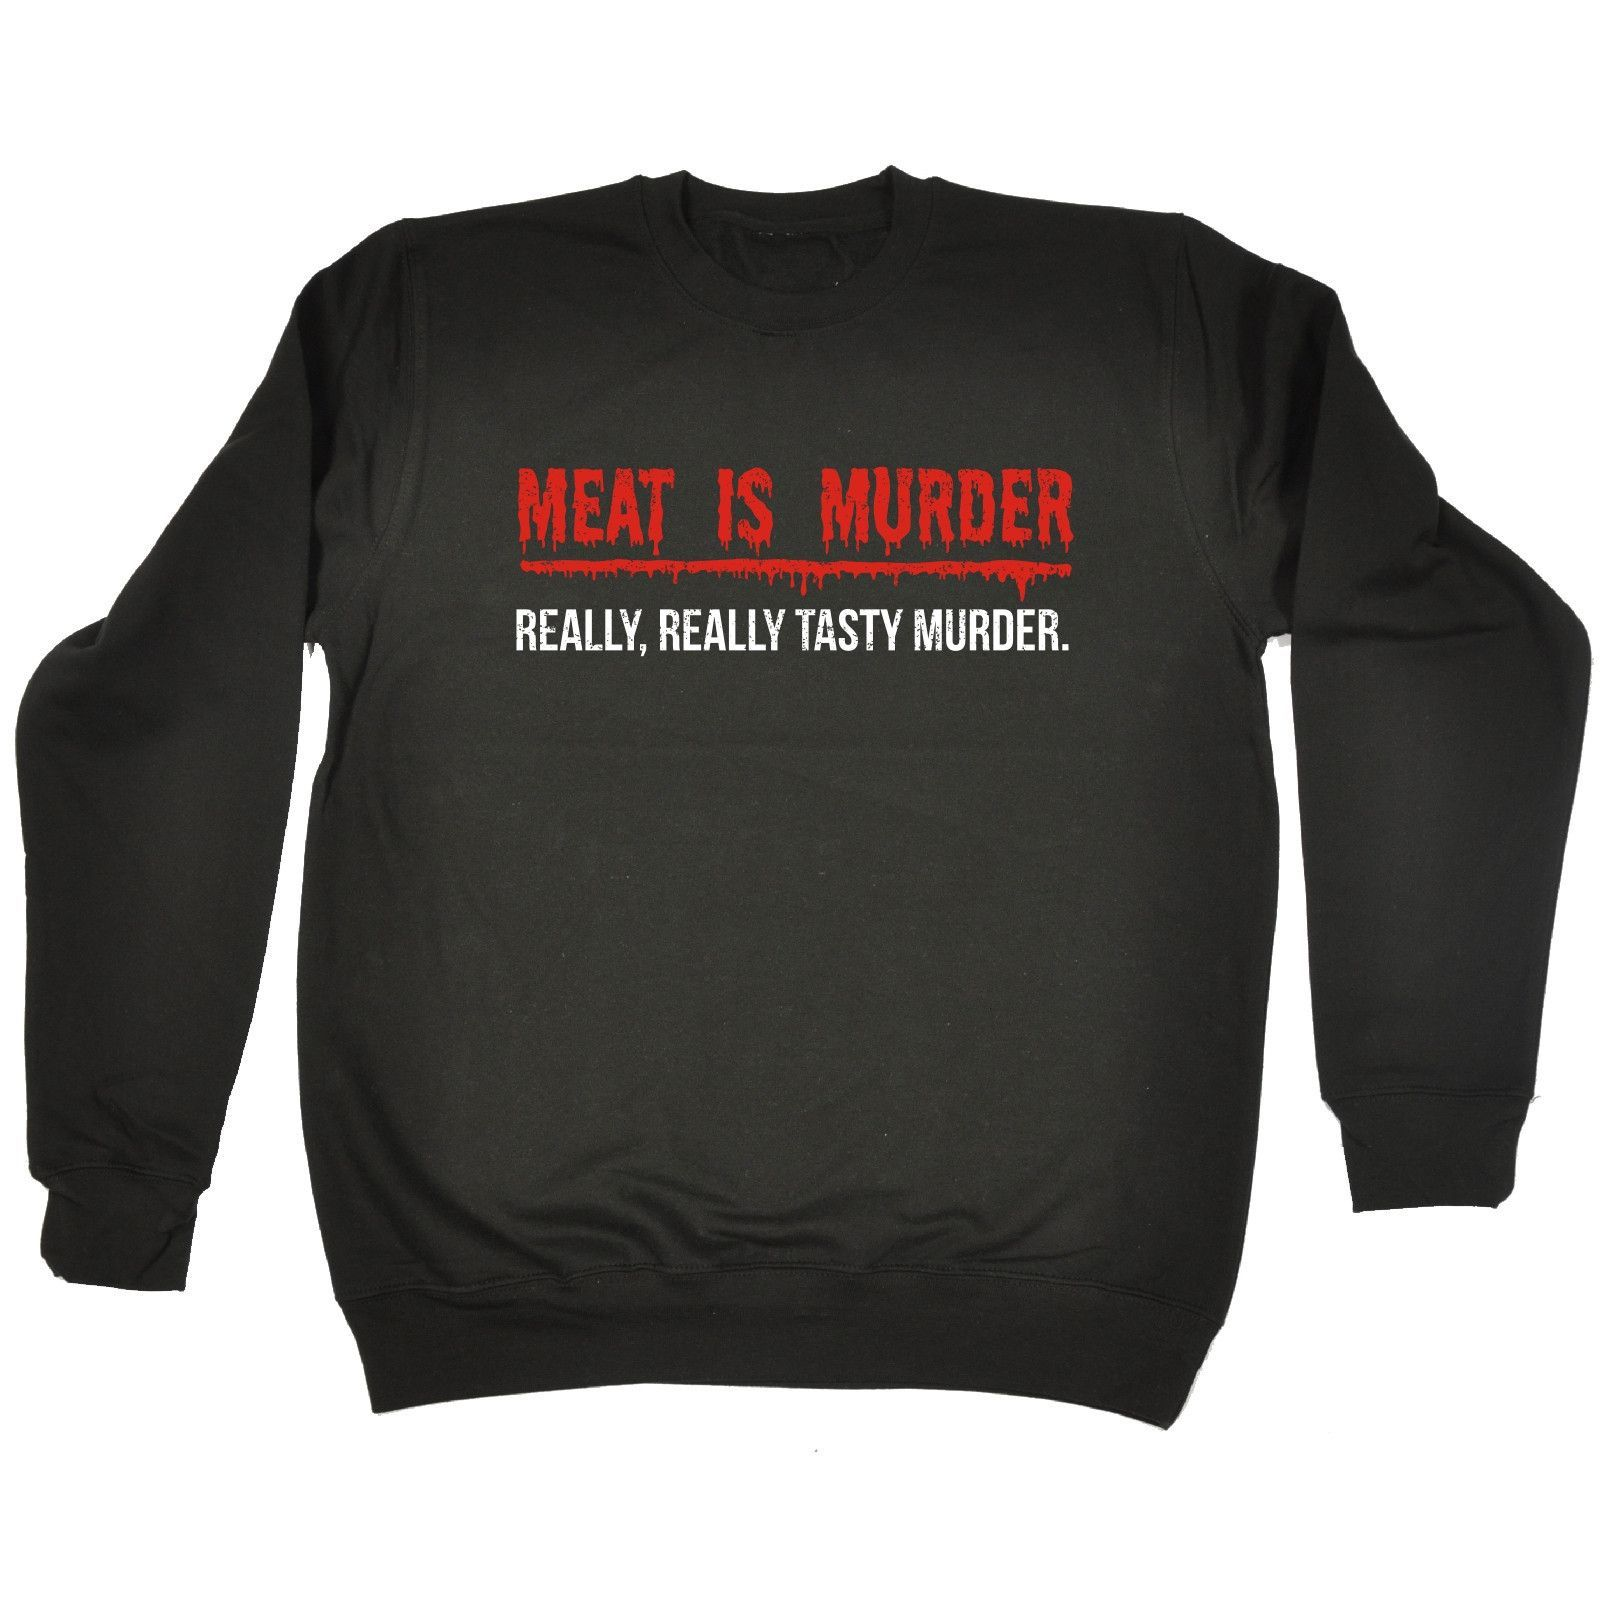 123t USA Meat Is Murder Really Really Tasty Murder Funny Sweatshirt